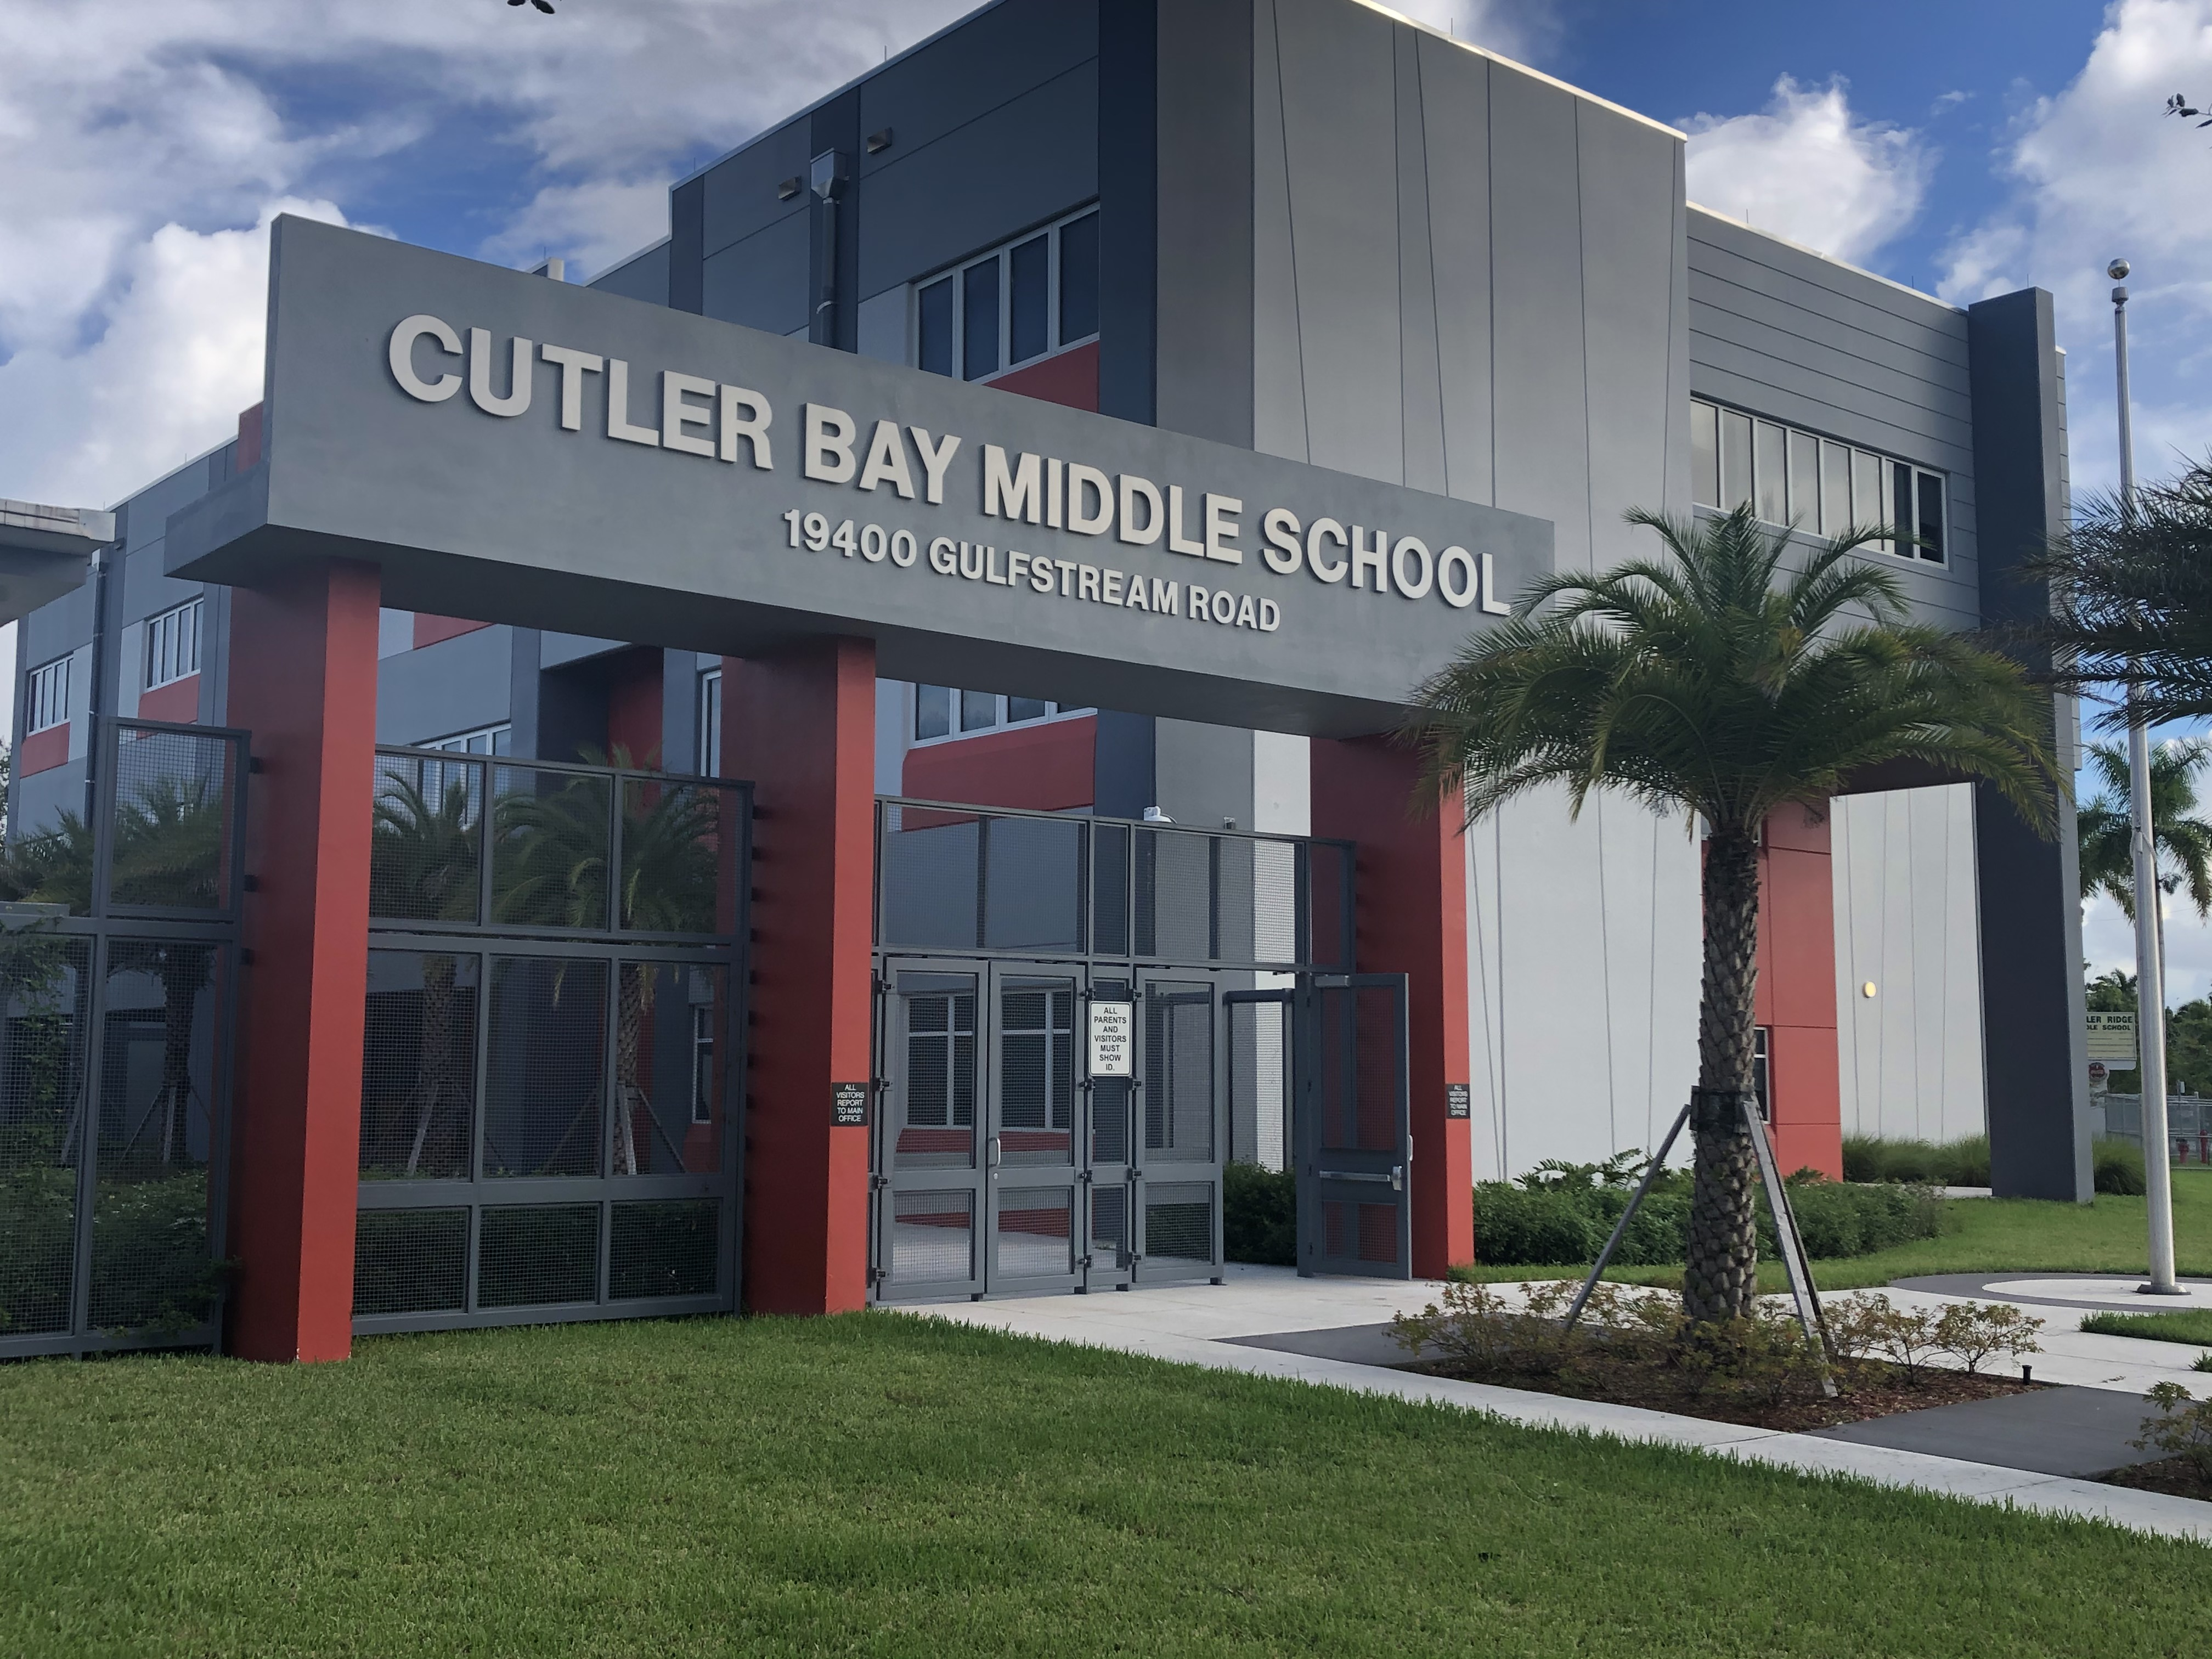 Cutler Bay Middle